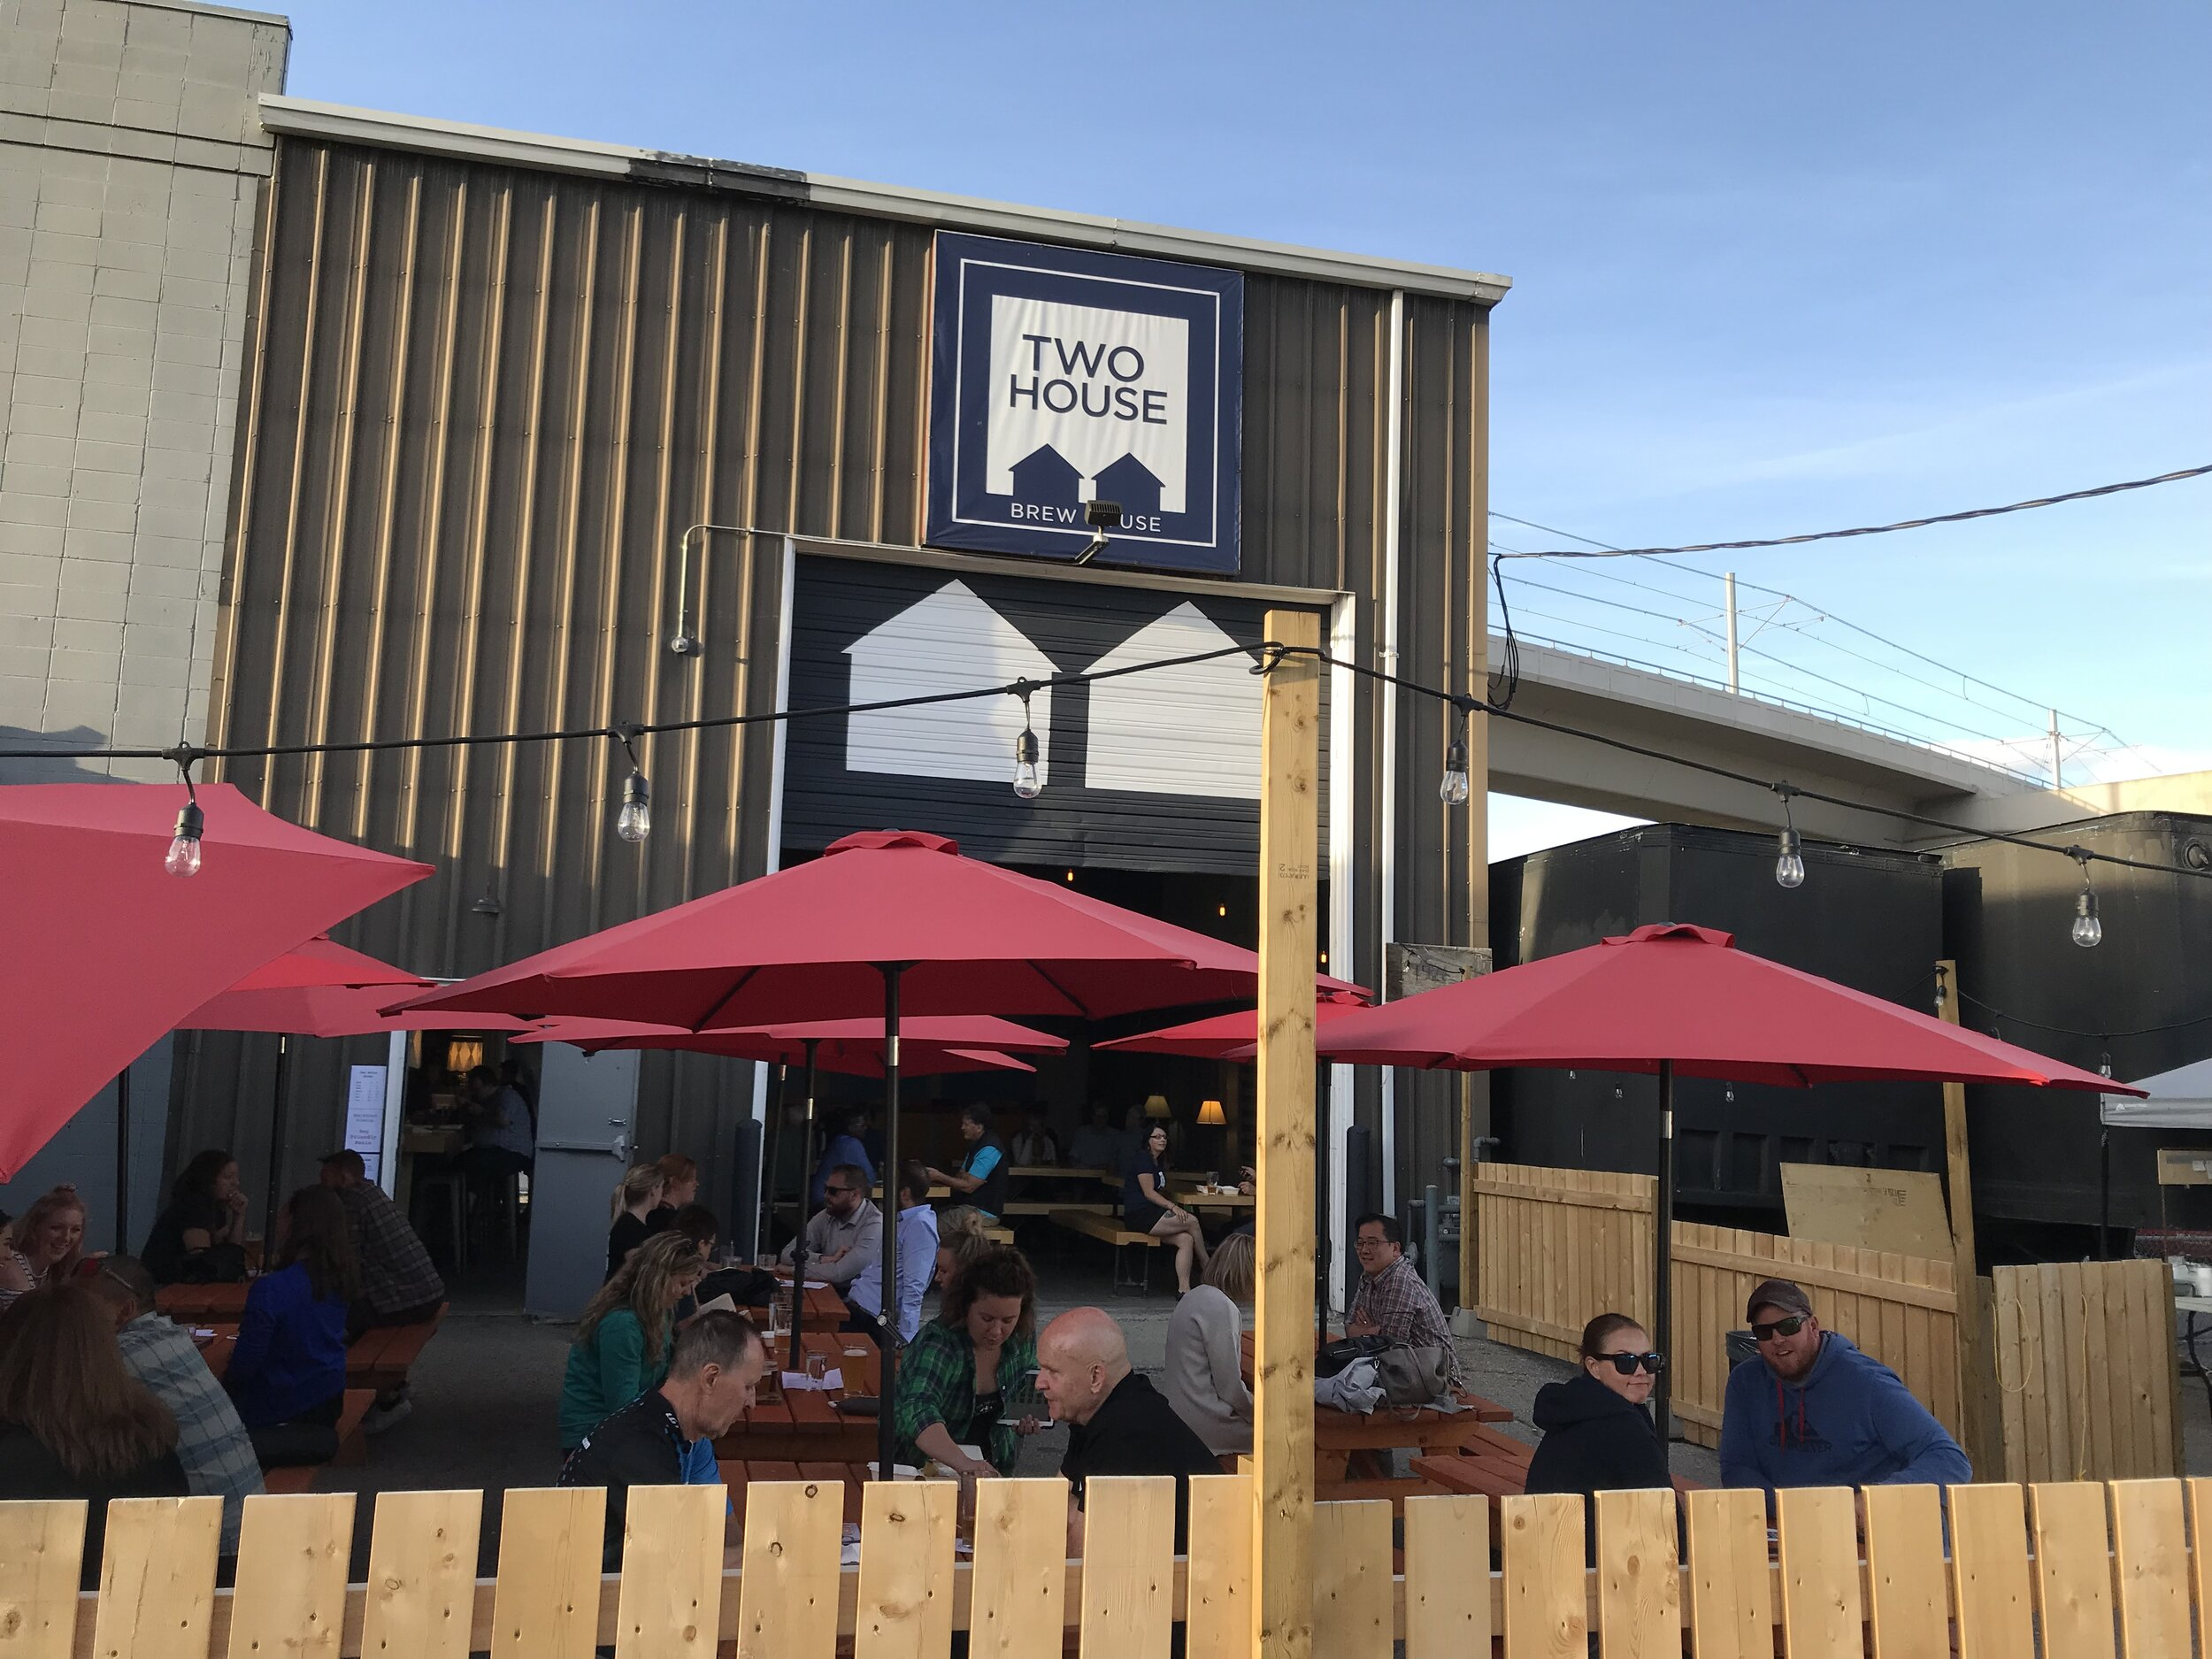 Two House Brewhouse is a great addition to Sunalta's urban playground.